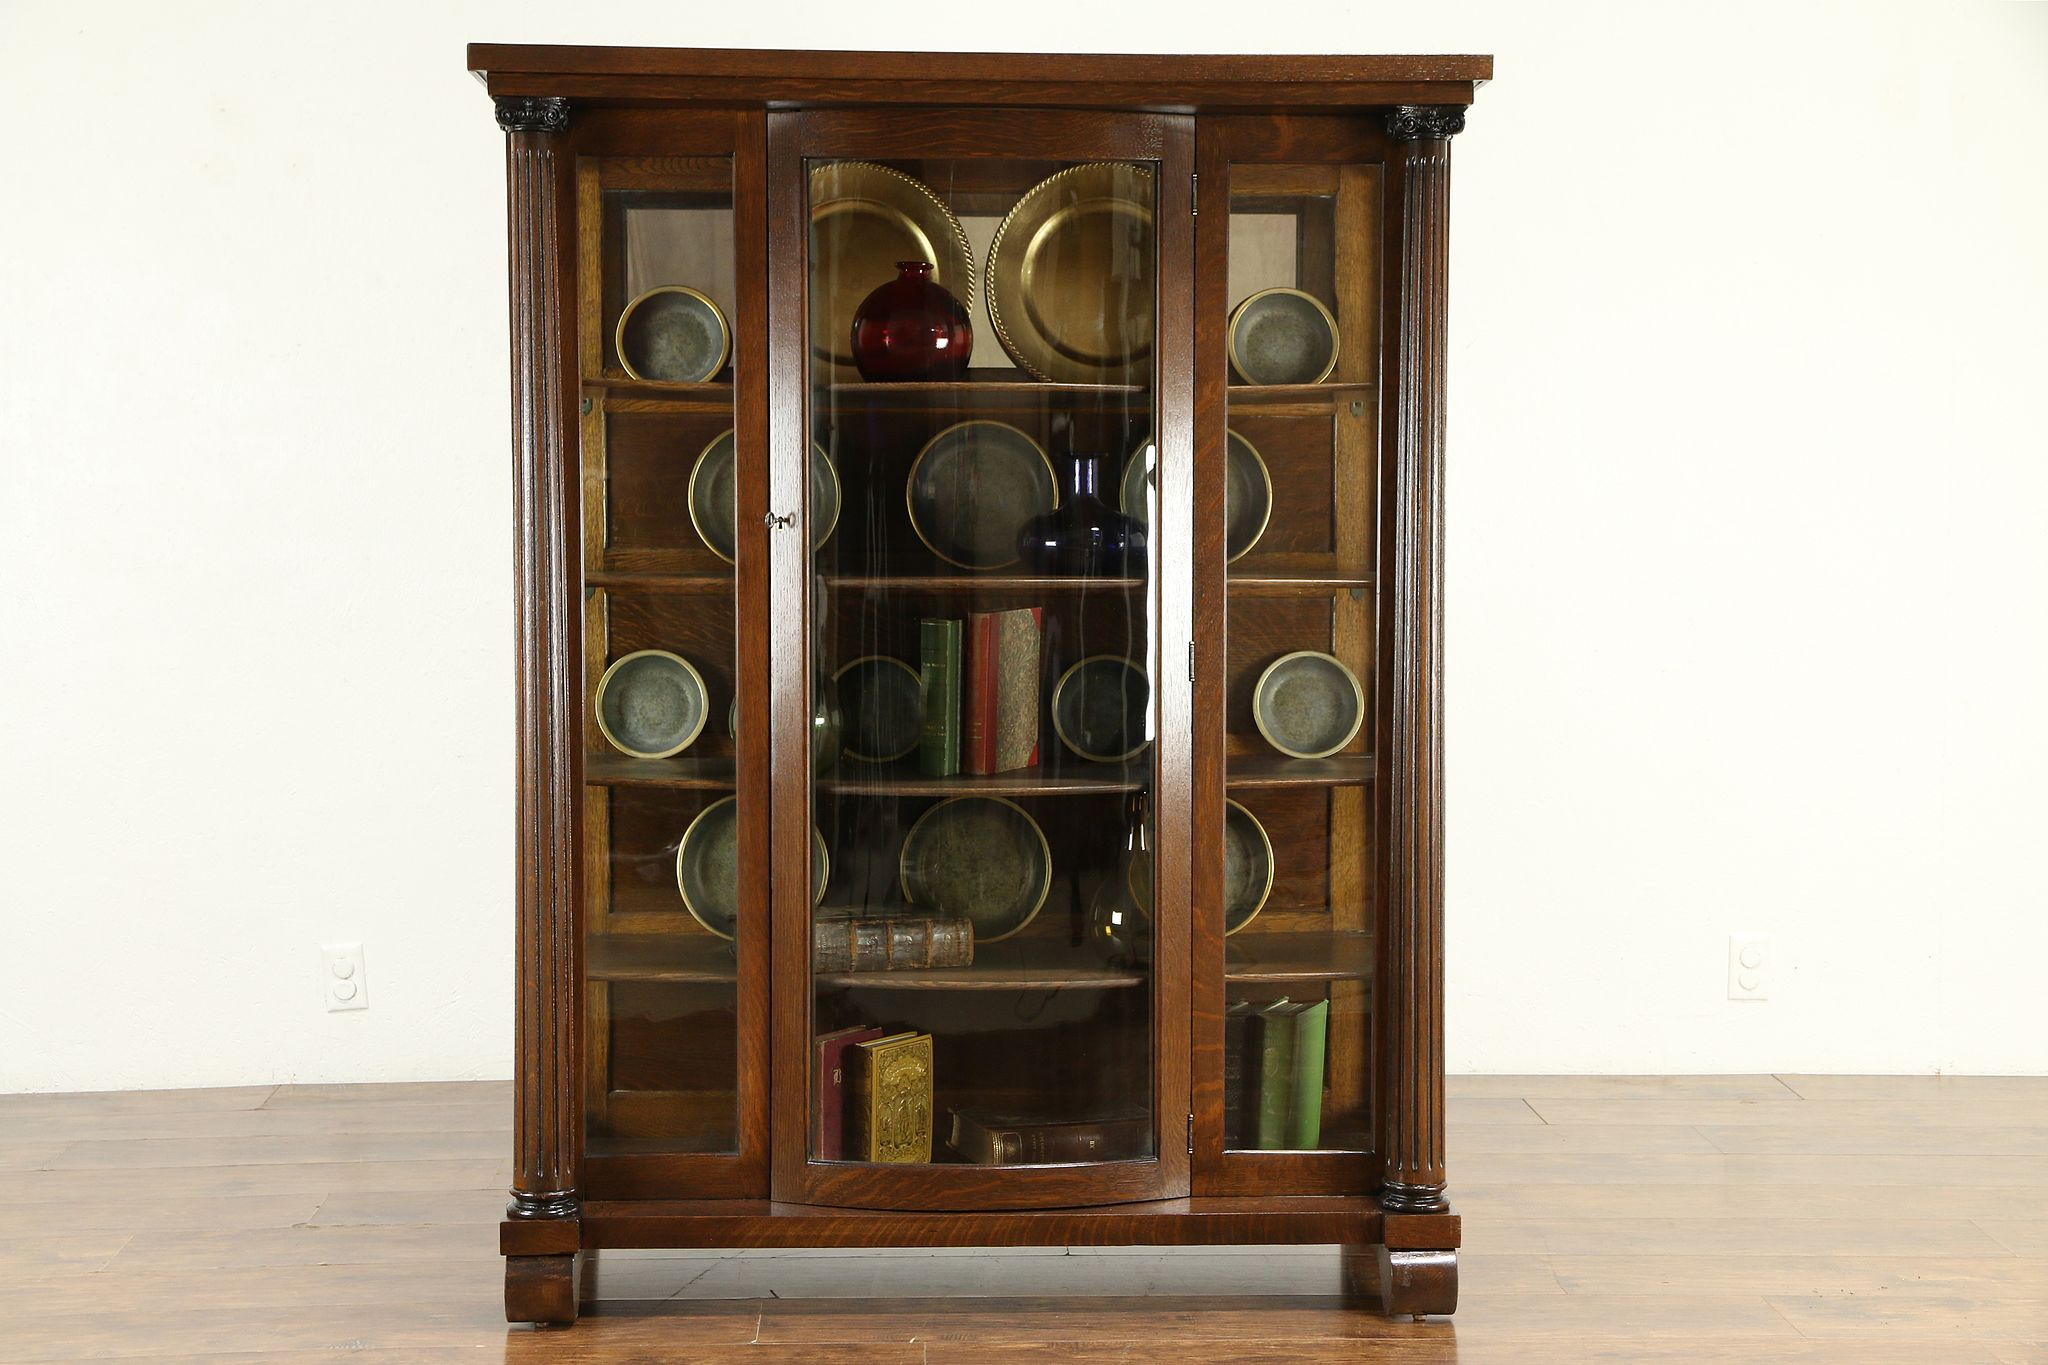 Antique Curio Cabinet With Curved Glass.Oak Antique Curved Glass China Or Curio Cabinet Fluted Columns 30743